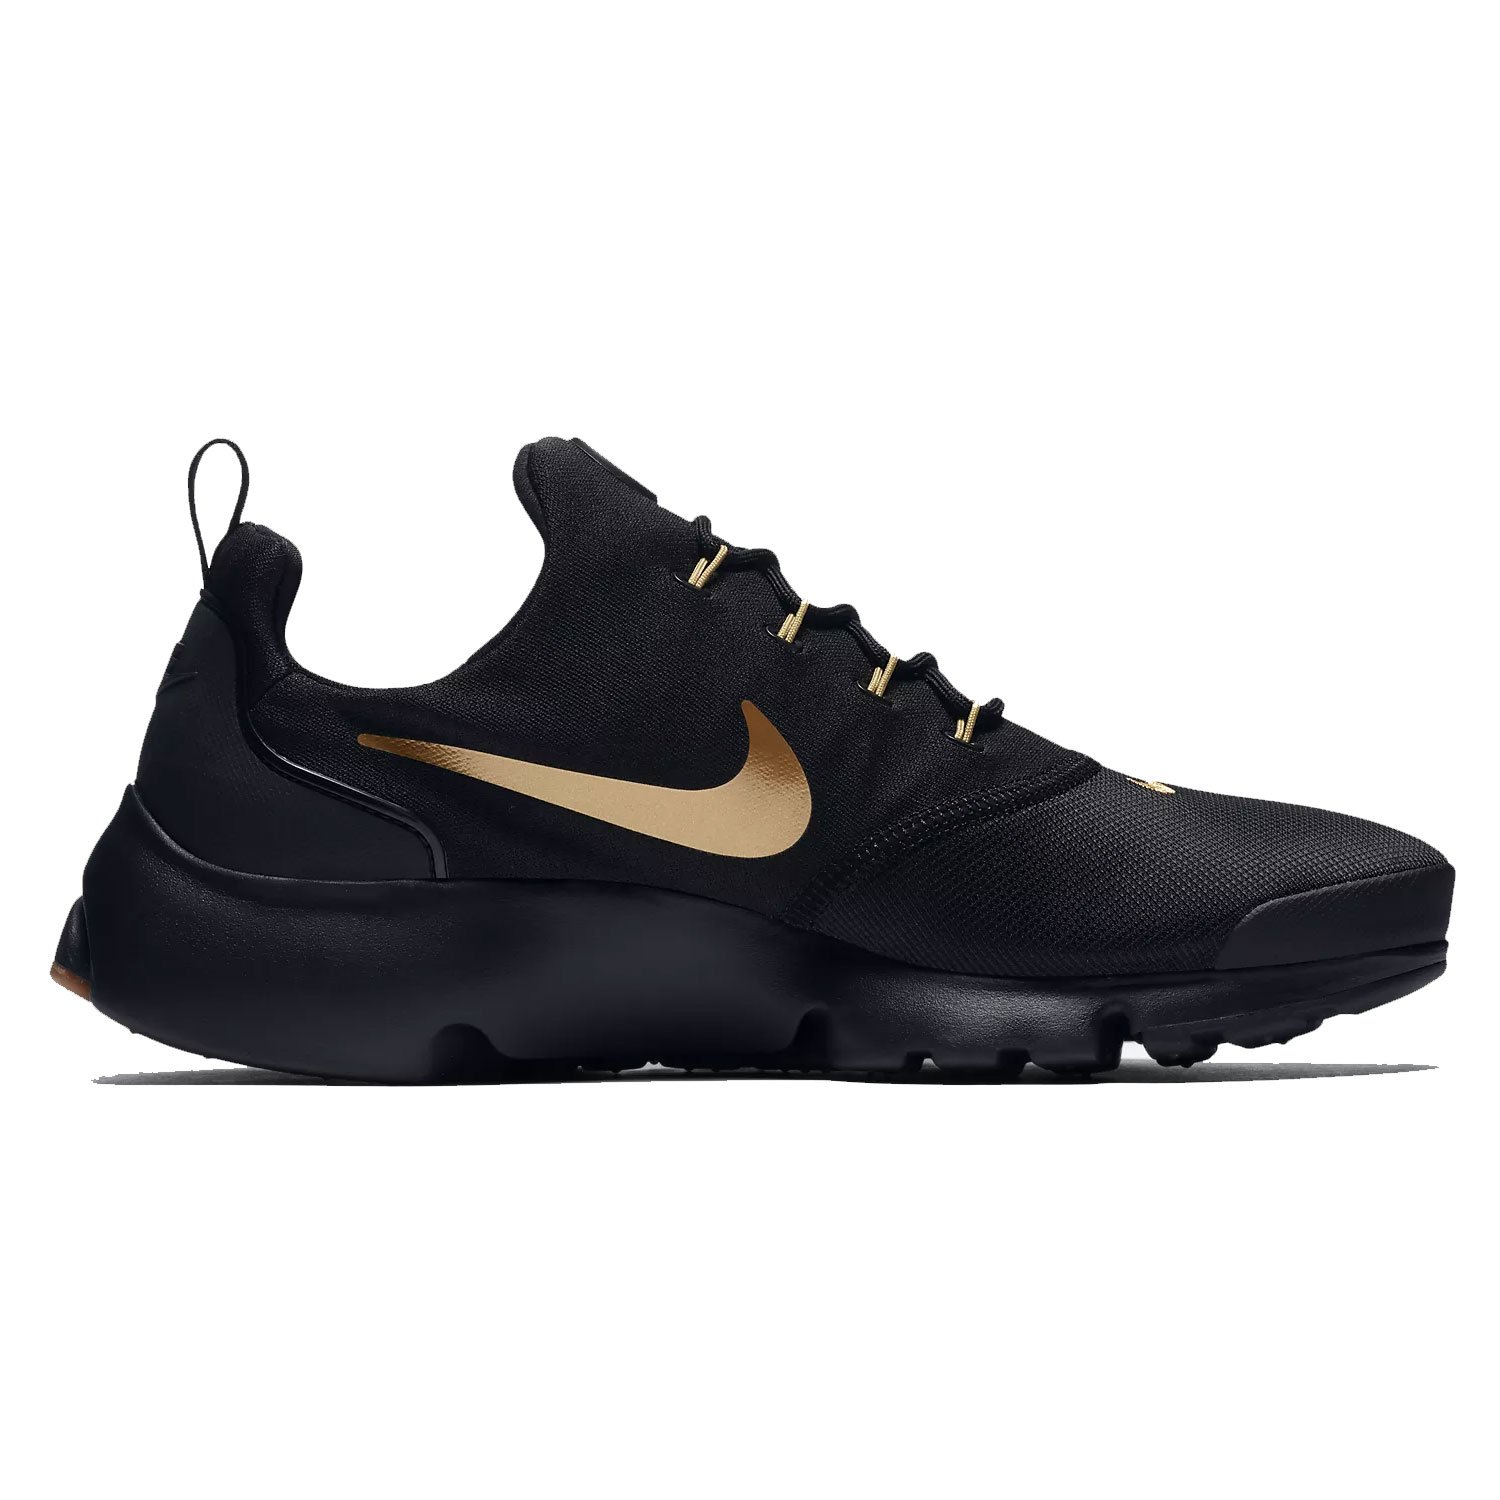 huge selection of a9a58 36ac4 Nike Mens Presto Fly Running Shoes Black Metallic Gold Gum 908019-010 Size  10  Buy Online at Low Prices in India - Amazon.in